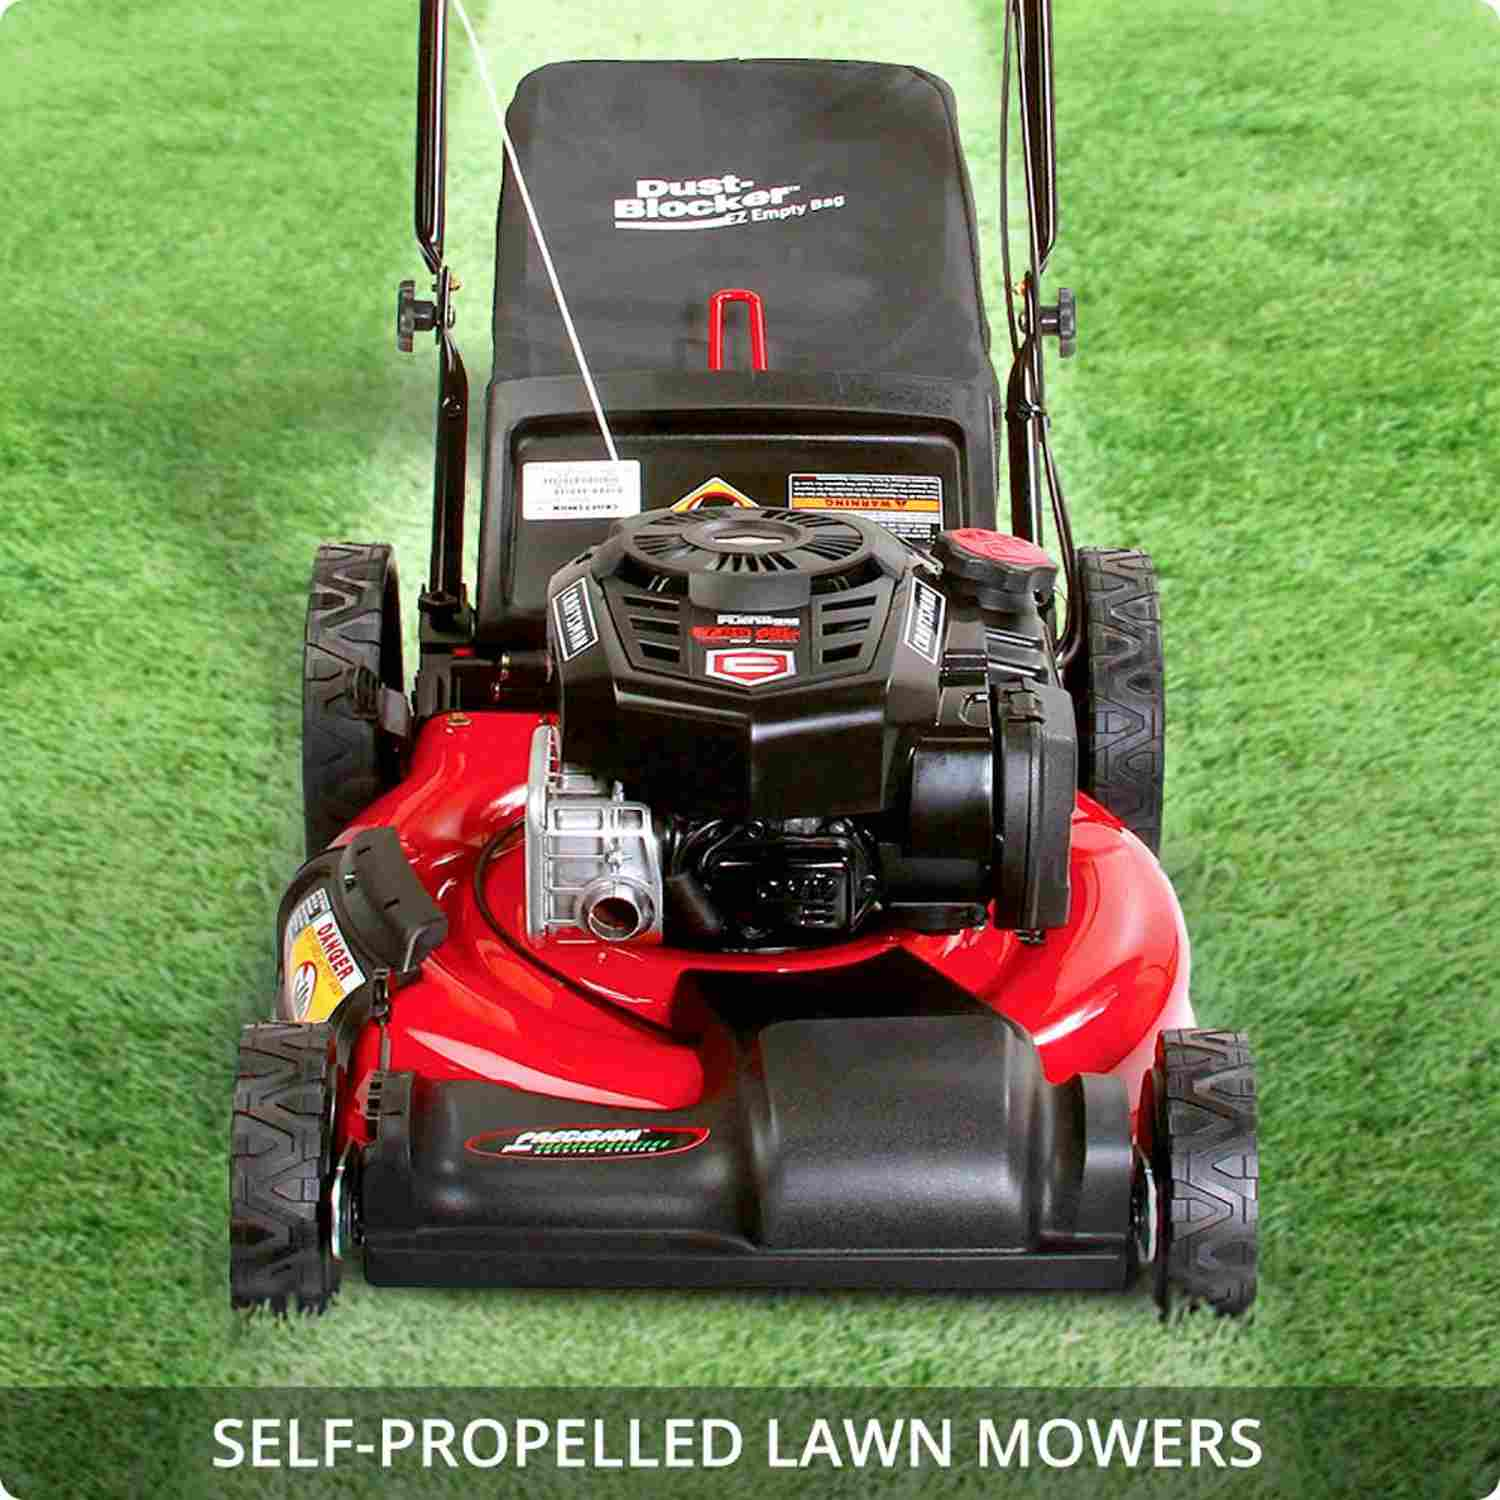 Electric Lawn Mower Sale Lawn Mowers Shop For The Perfect Lawn Mower At Sears